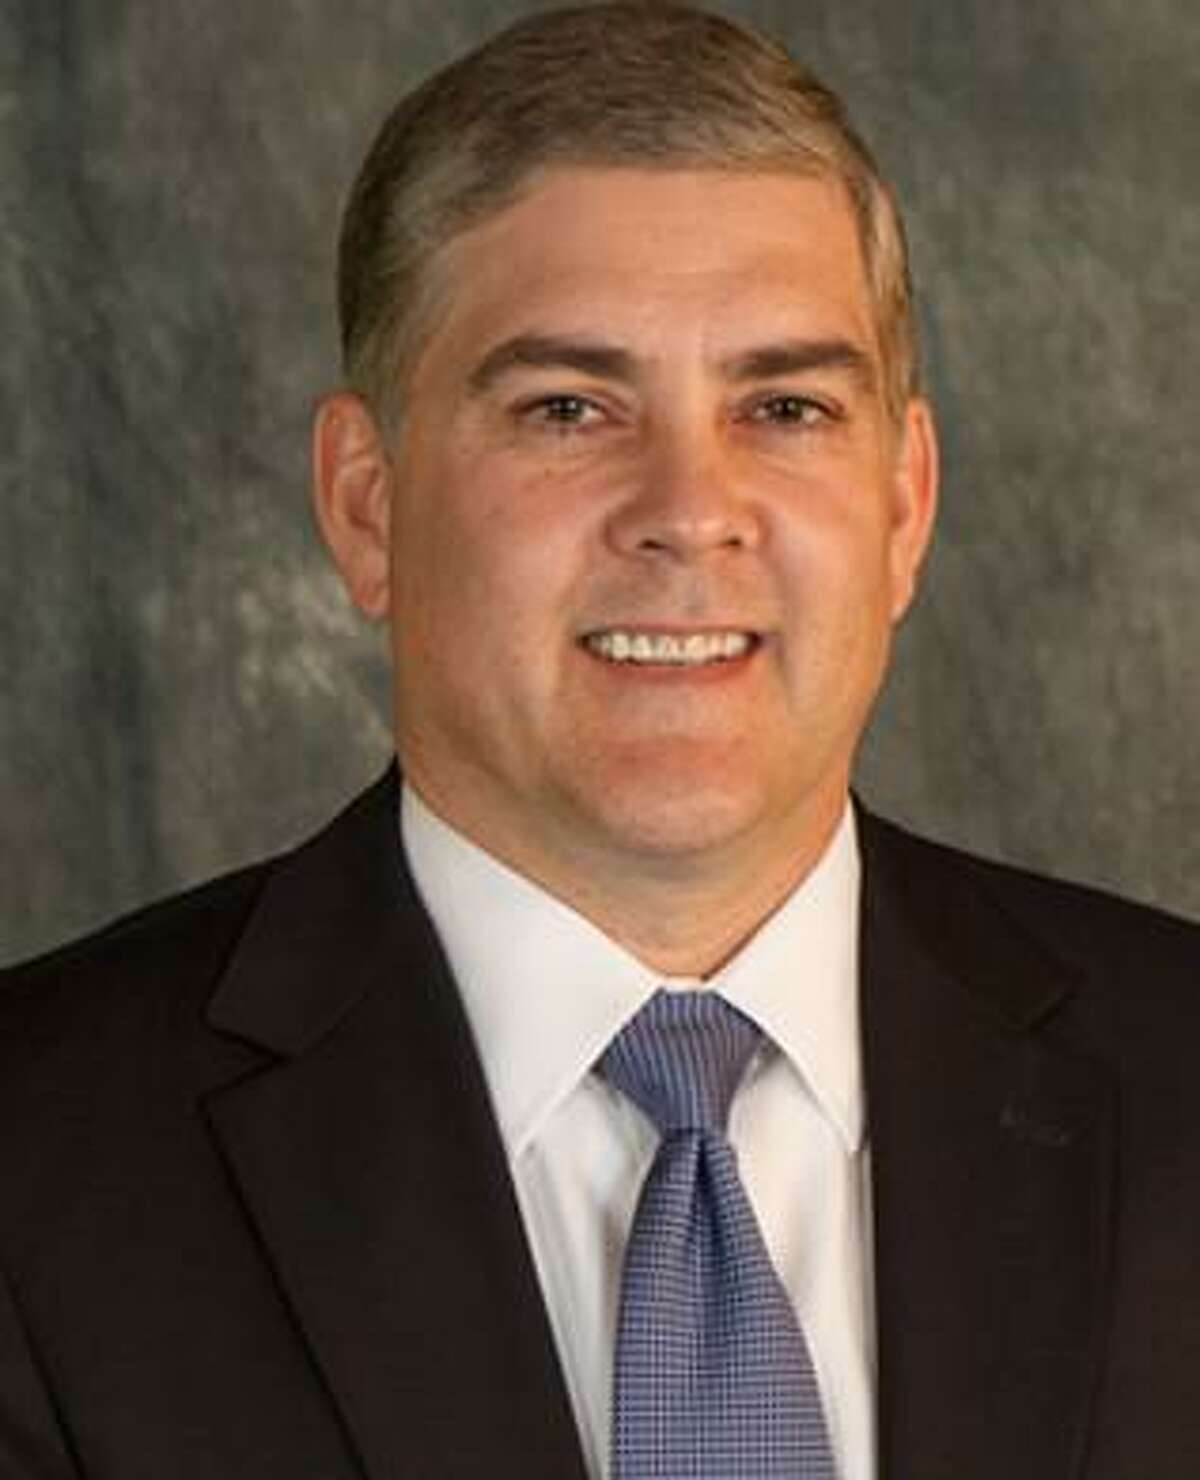 Jeff Jones, the deputy city manager of Dallas suburb Mesquite, was chosen as the new general manager and president of The Woodlands in June 2020. He replaces Don Norrell, who agreed to remain on the job until Sept. 6. Jones began work no later than Aug. 31.